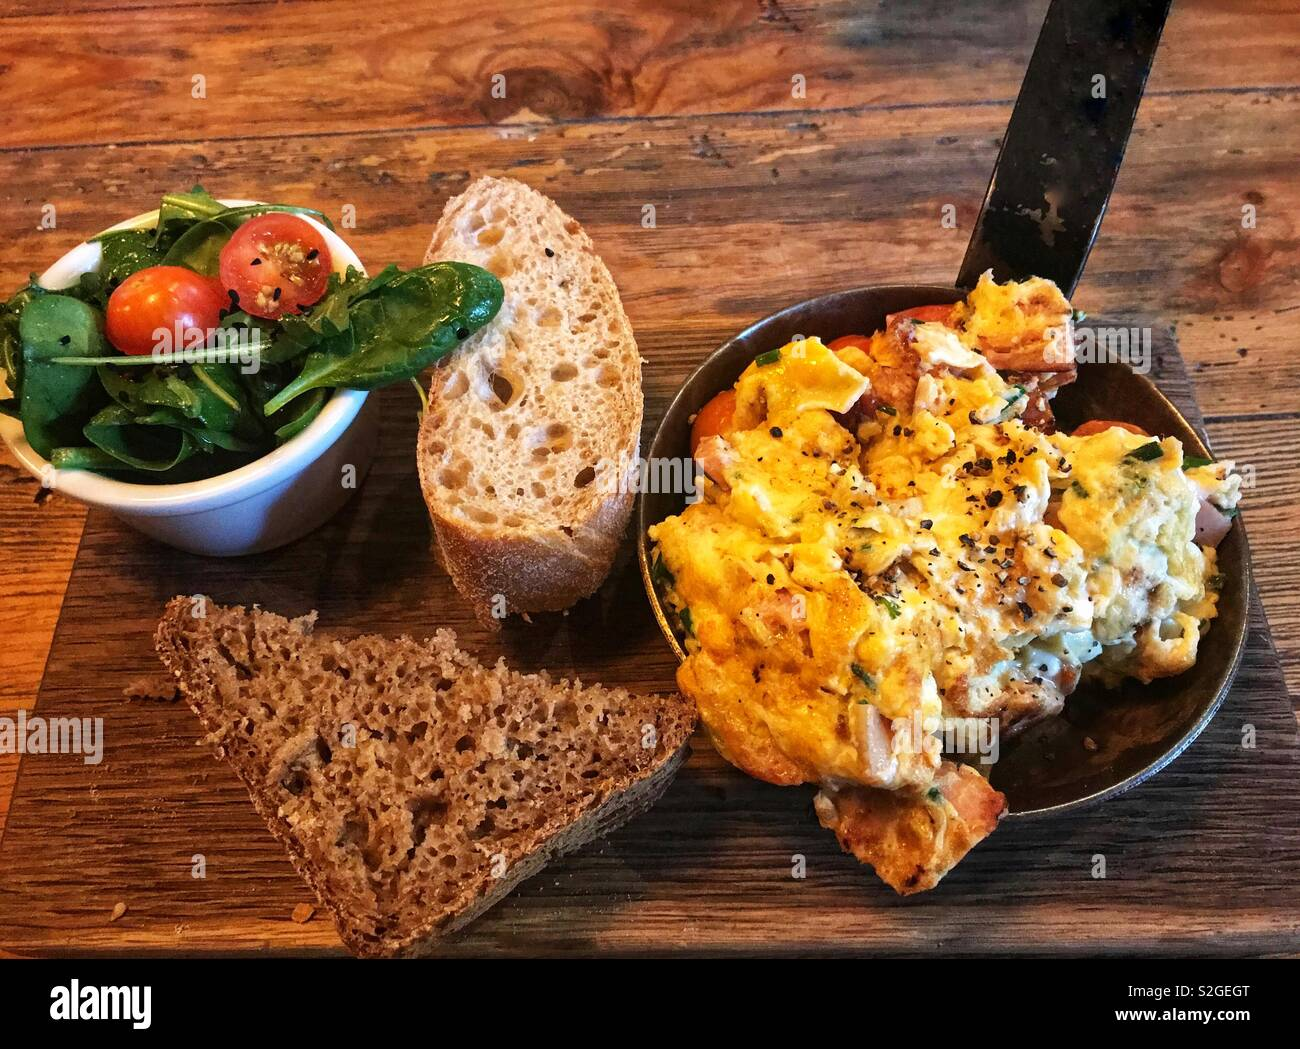 Scrambled eggs served in individual cast iron pan, salad and bread for breakfast - Stock Image